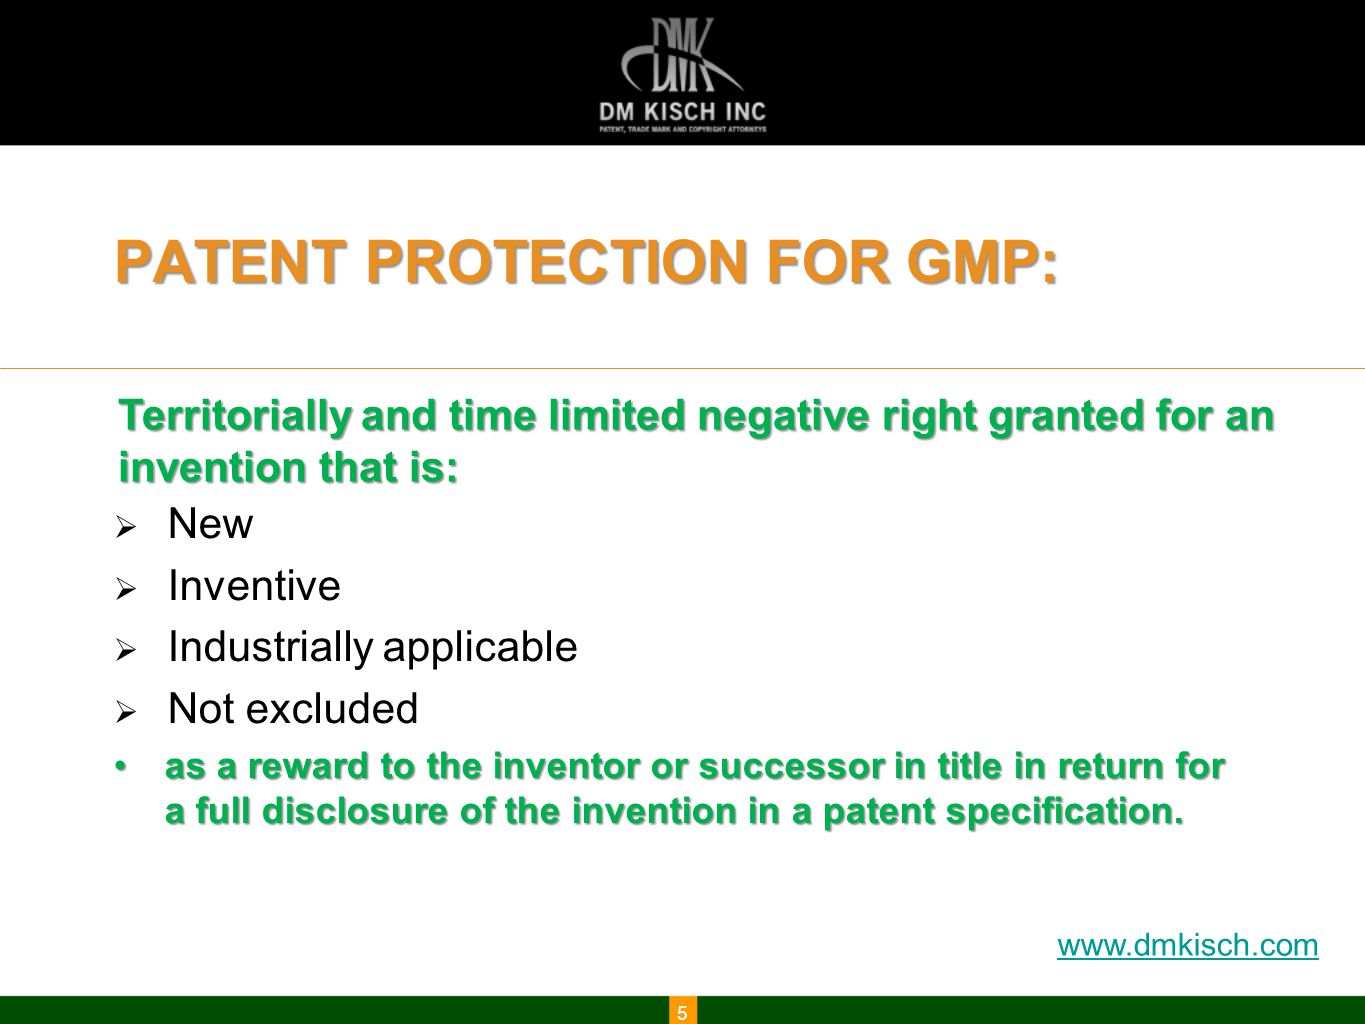 www.dmkisch.com PATENT PROTECTION FOR GMP:  New  Inventive  Industrially applicable  Not excluded as a reward to the inventor or successor in title in return for a full disclosure of the invention in a patent specification.as a reward to the inventor or successor in title in return for a full disclosure of the invention in a patent specification.